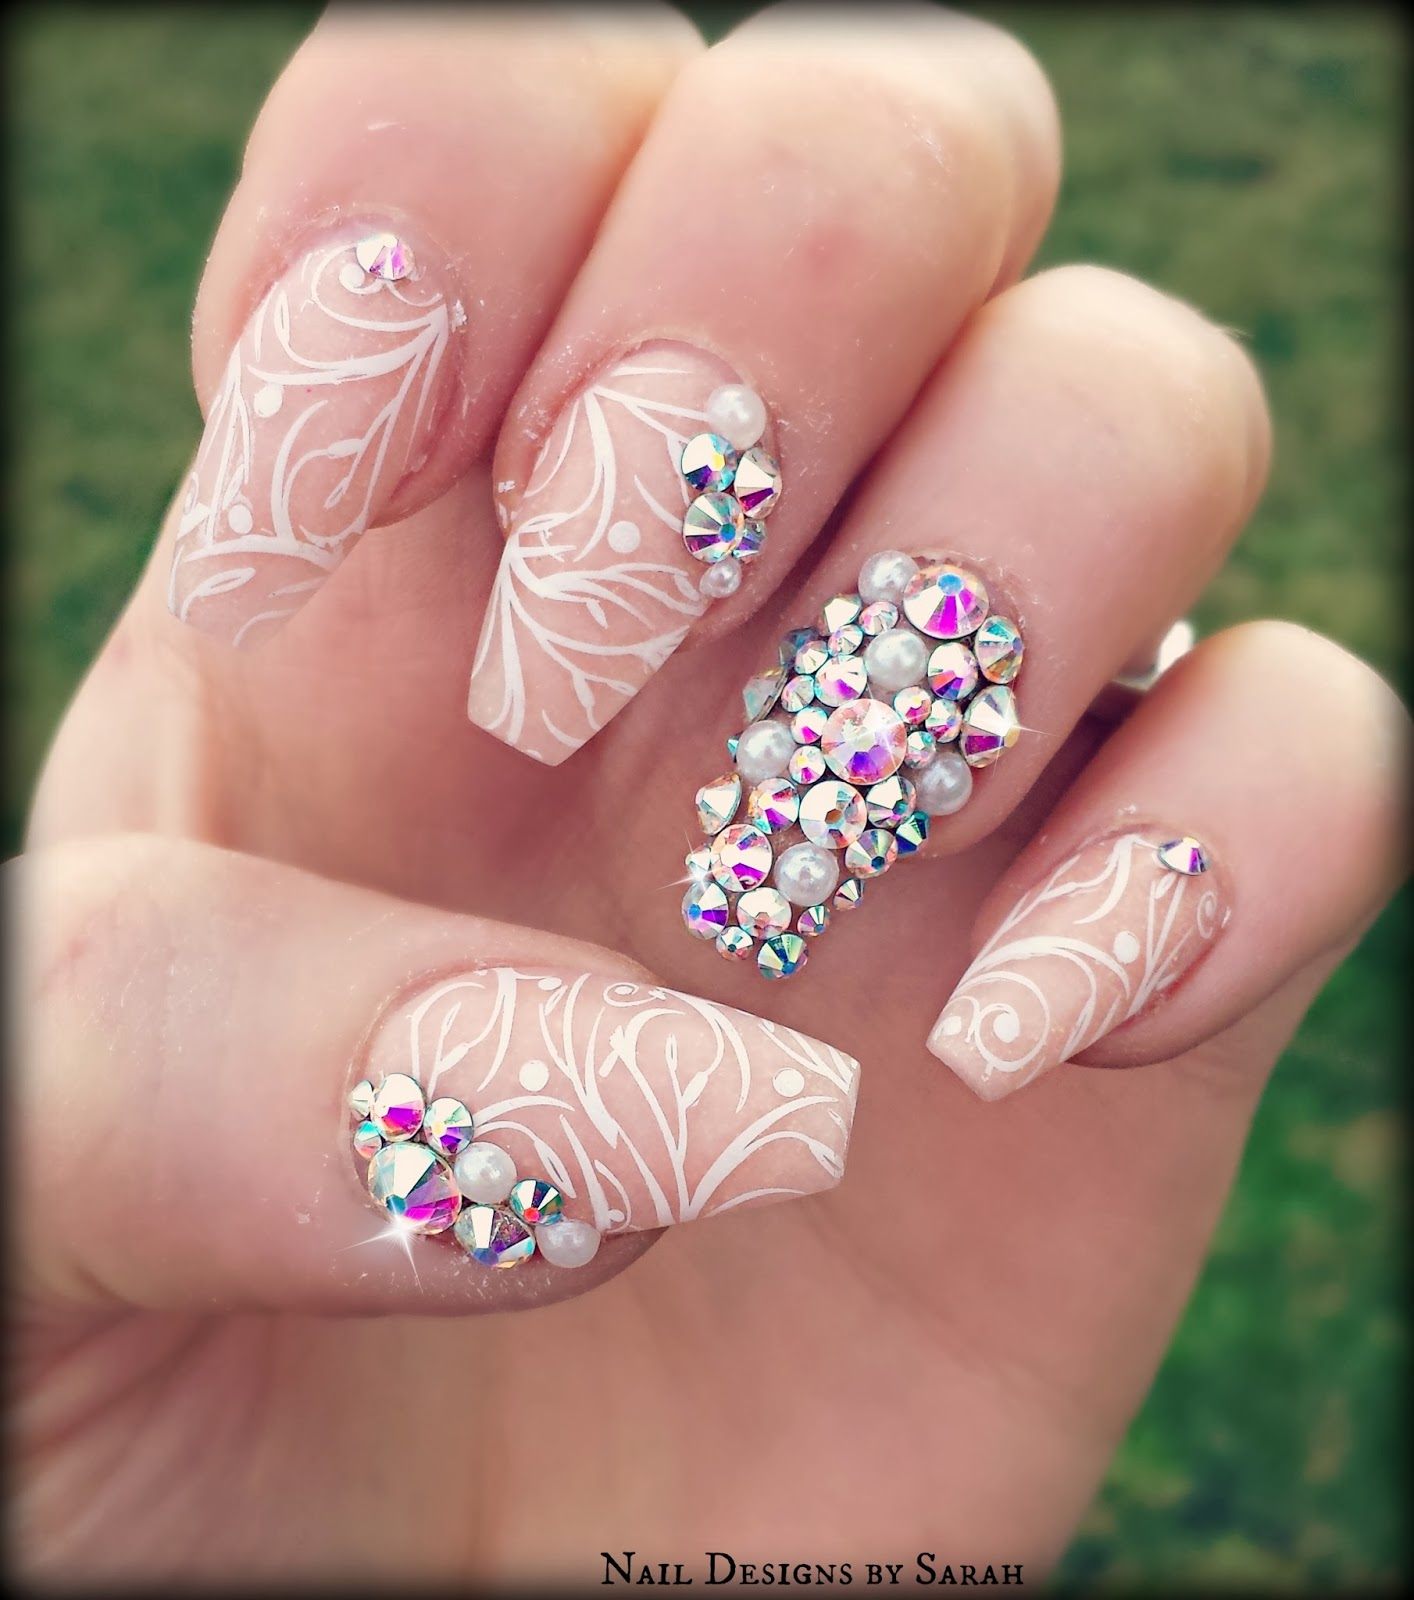 Nail Art: Blog Not Found